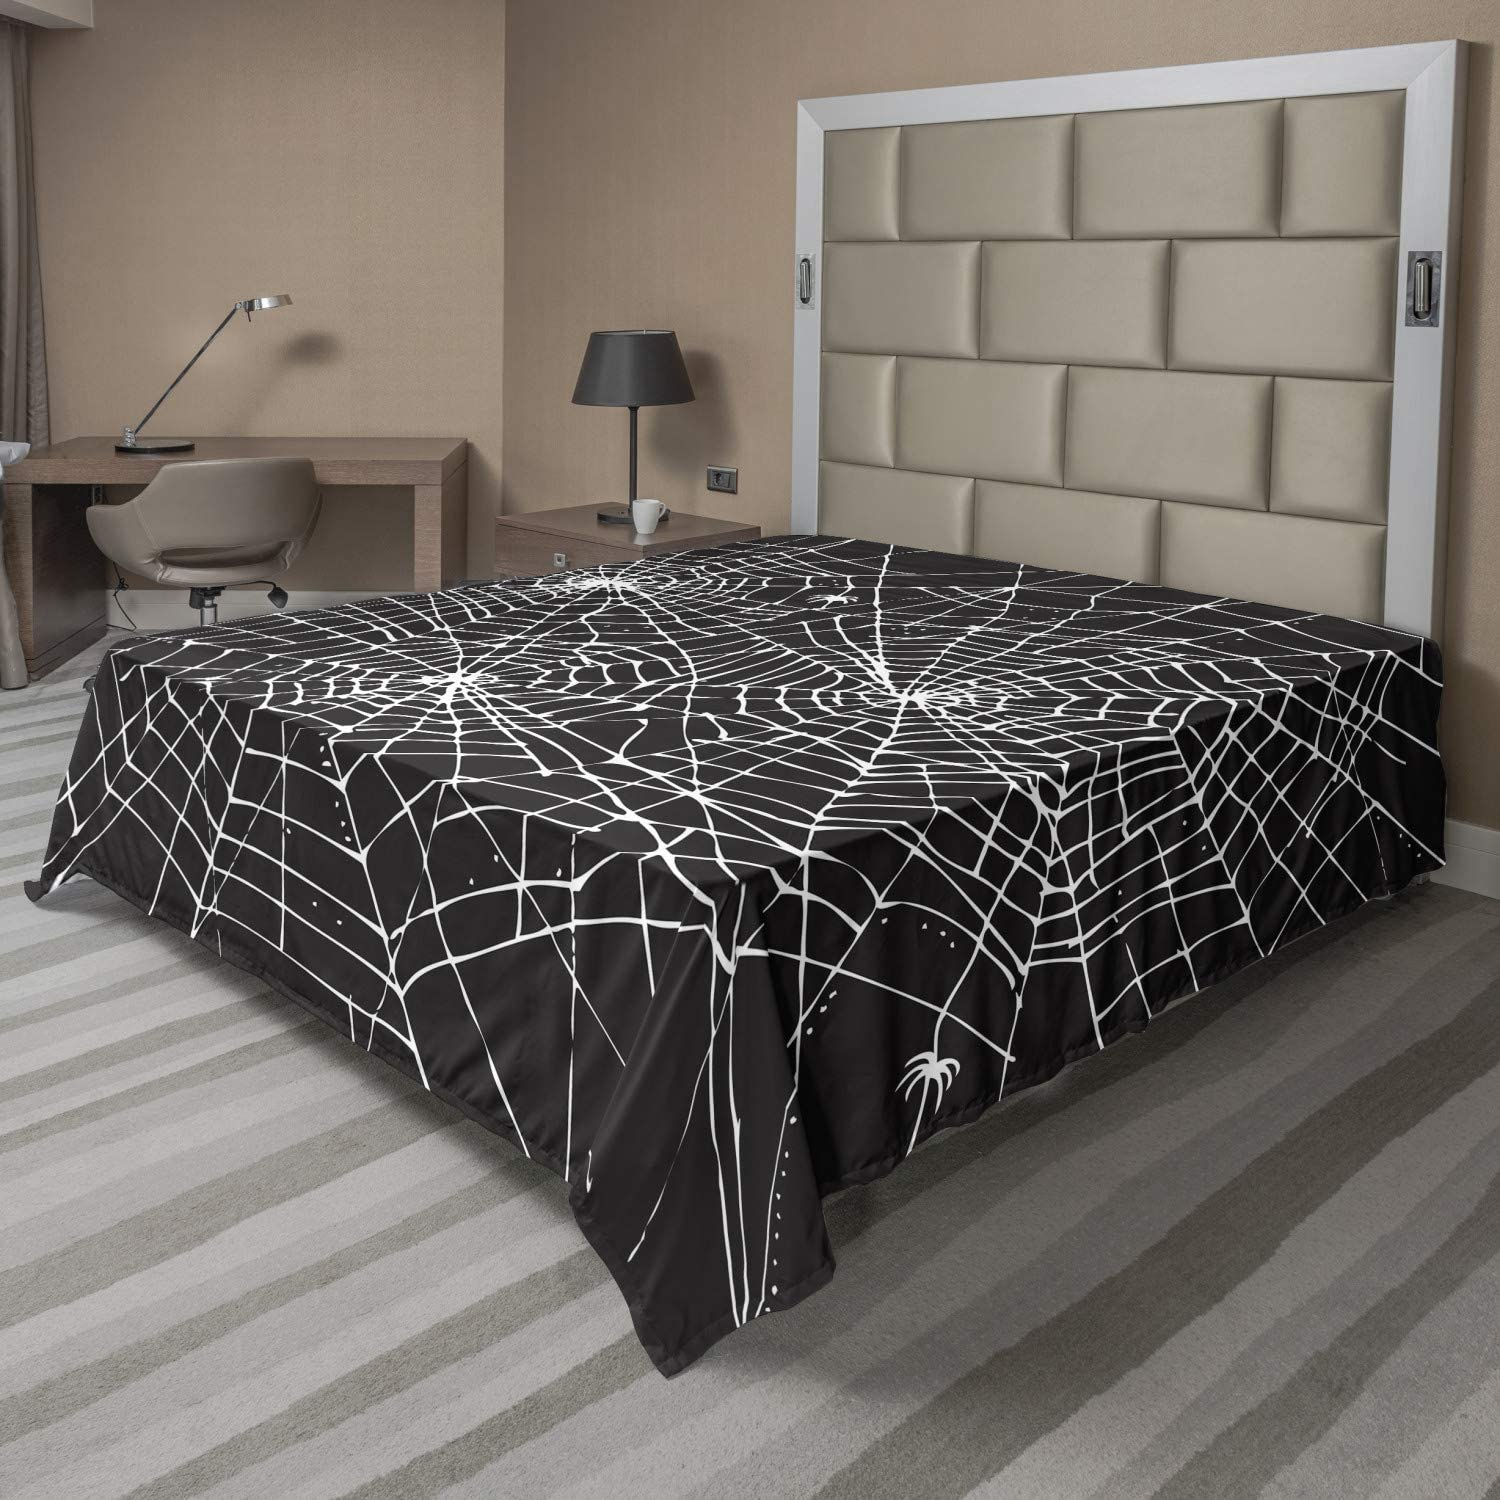 Lunarable Spiderweb Flat Sheet Greyscale Style Direct sale of manufacturer Halloween Web Excellence De